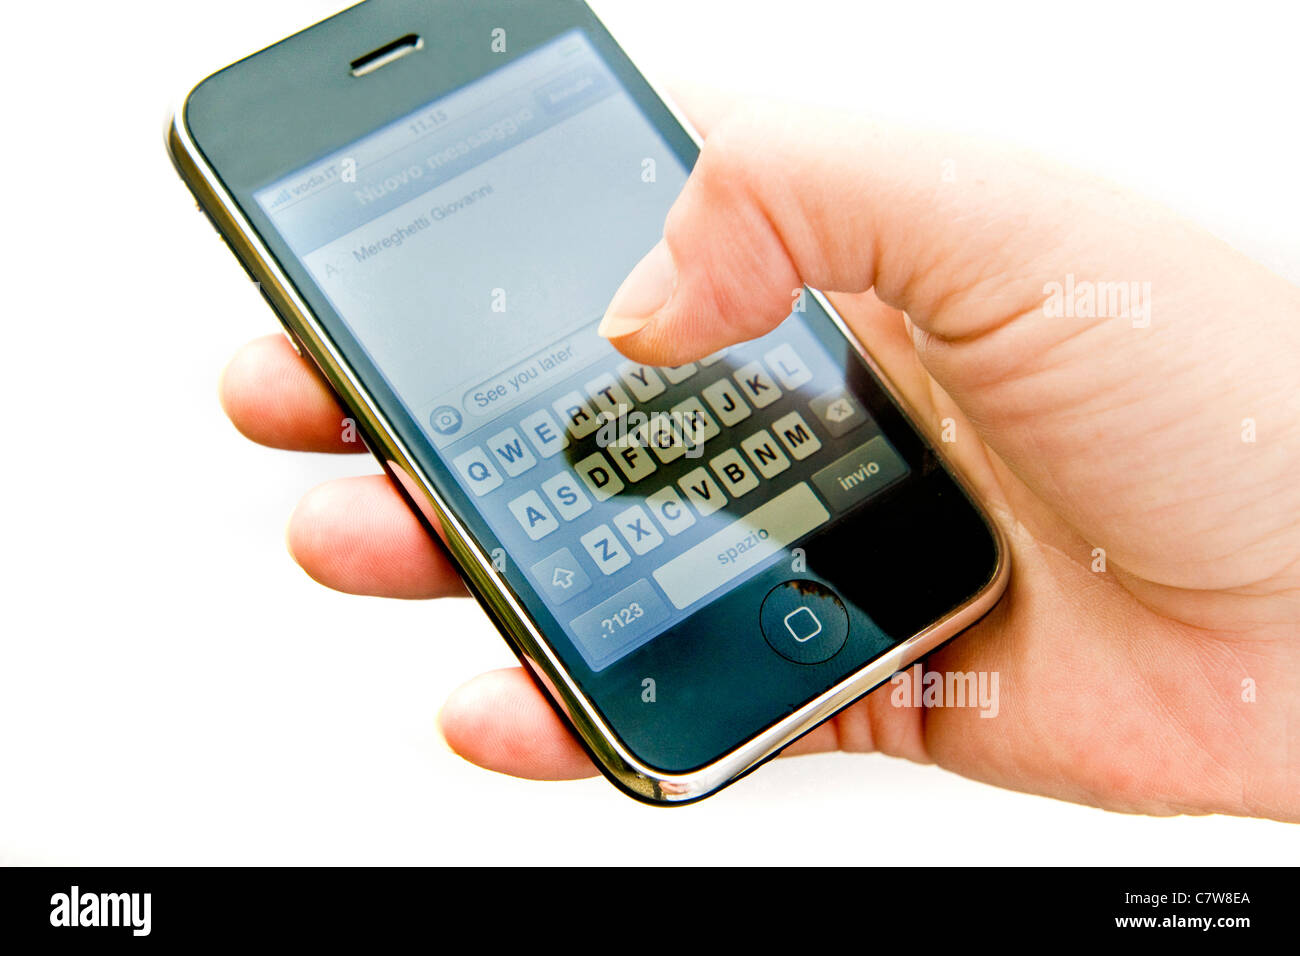 Close up of woman's hand using palmtop - Stock Image